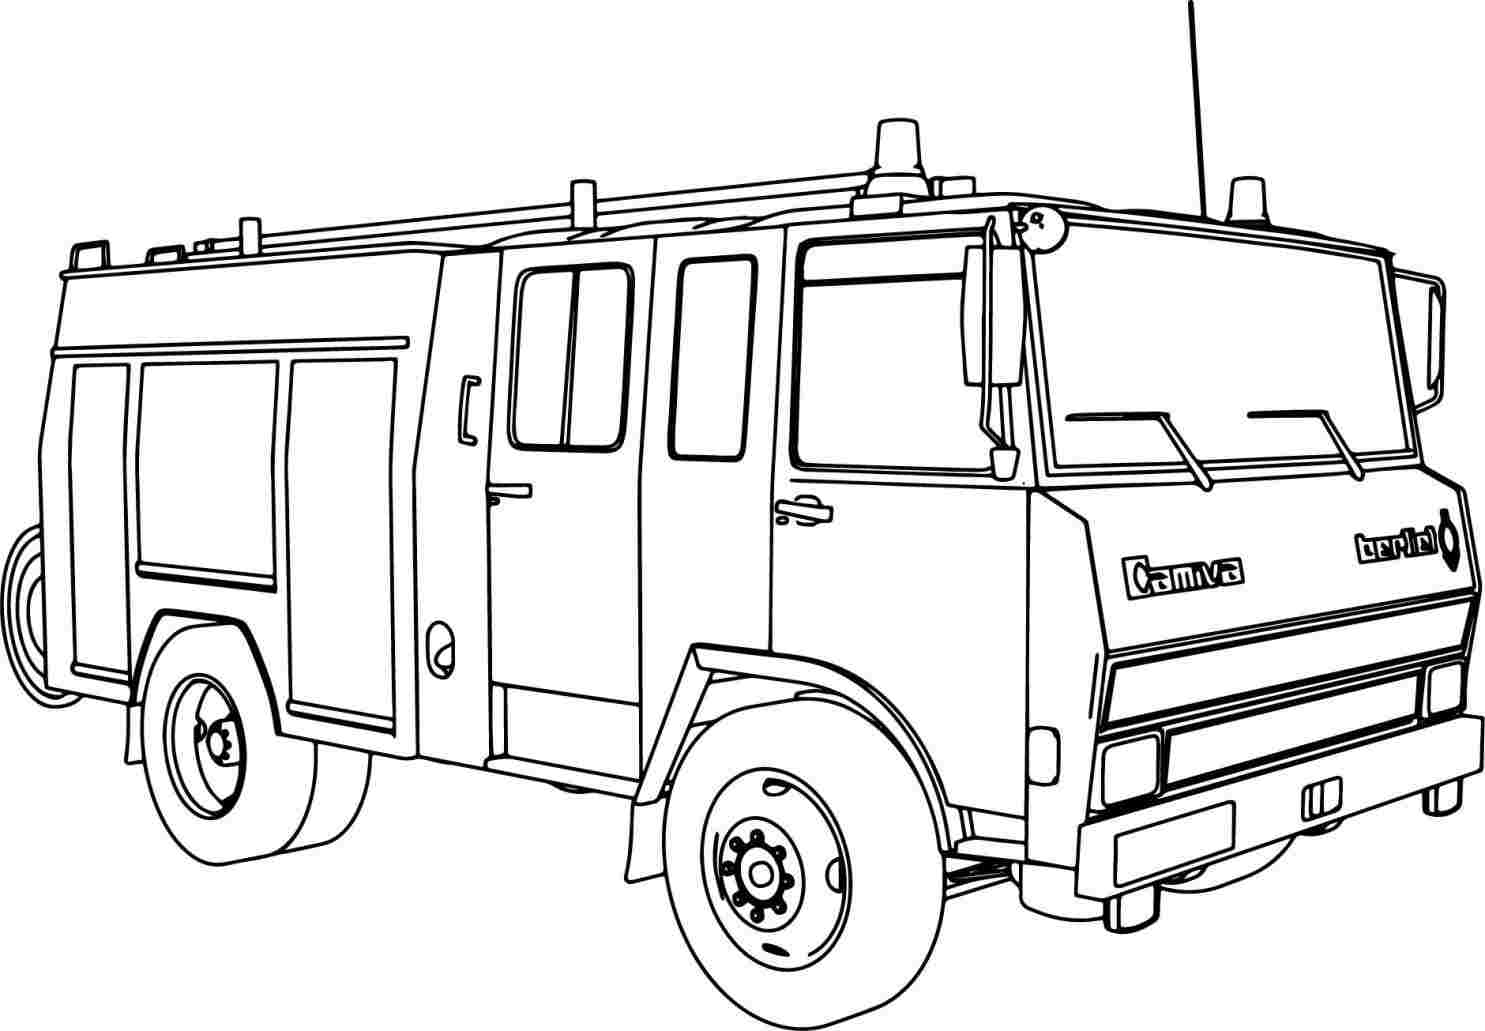 how to draw fire engine fire truck drawing pictures at getdrawings free download how fire engine to draw